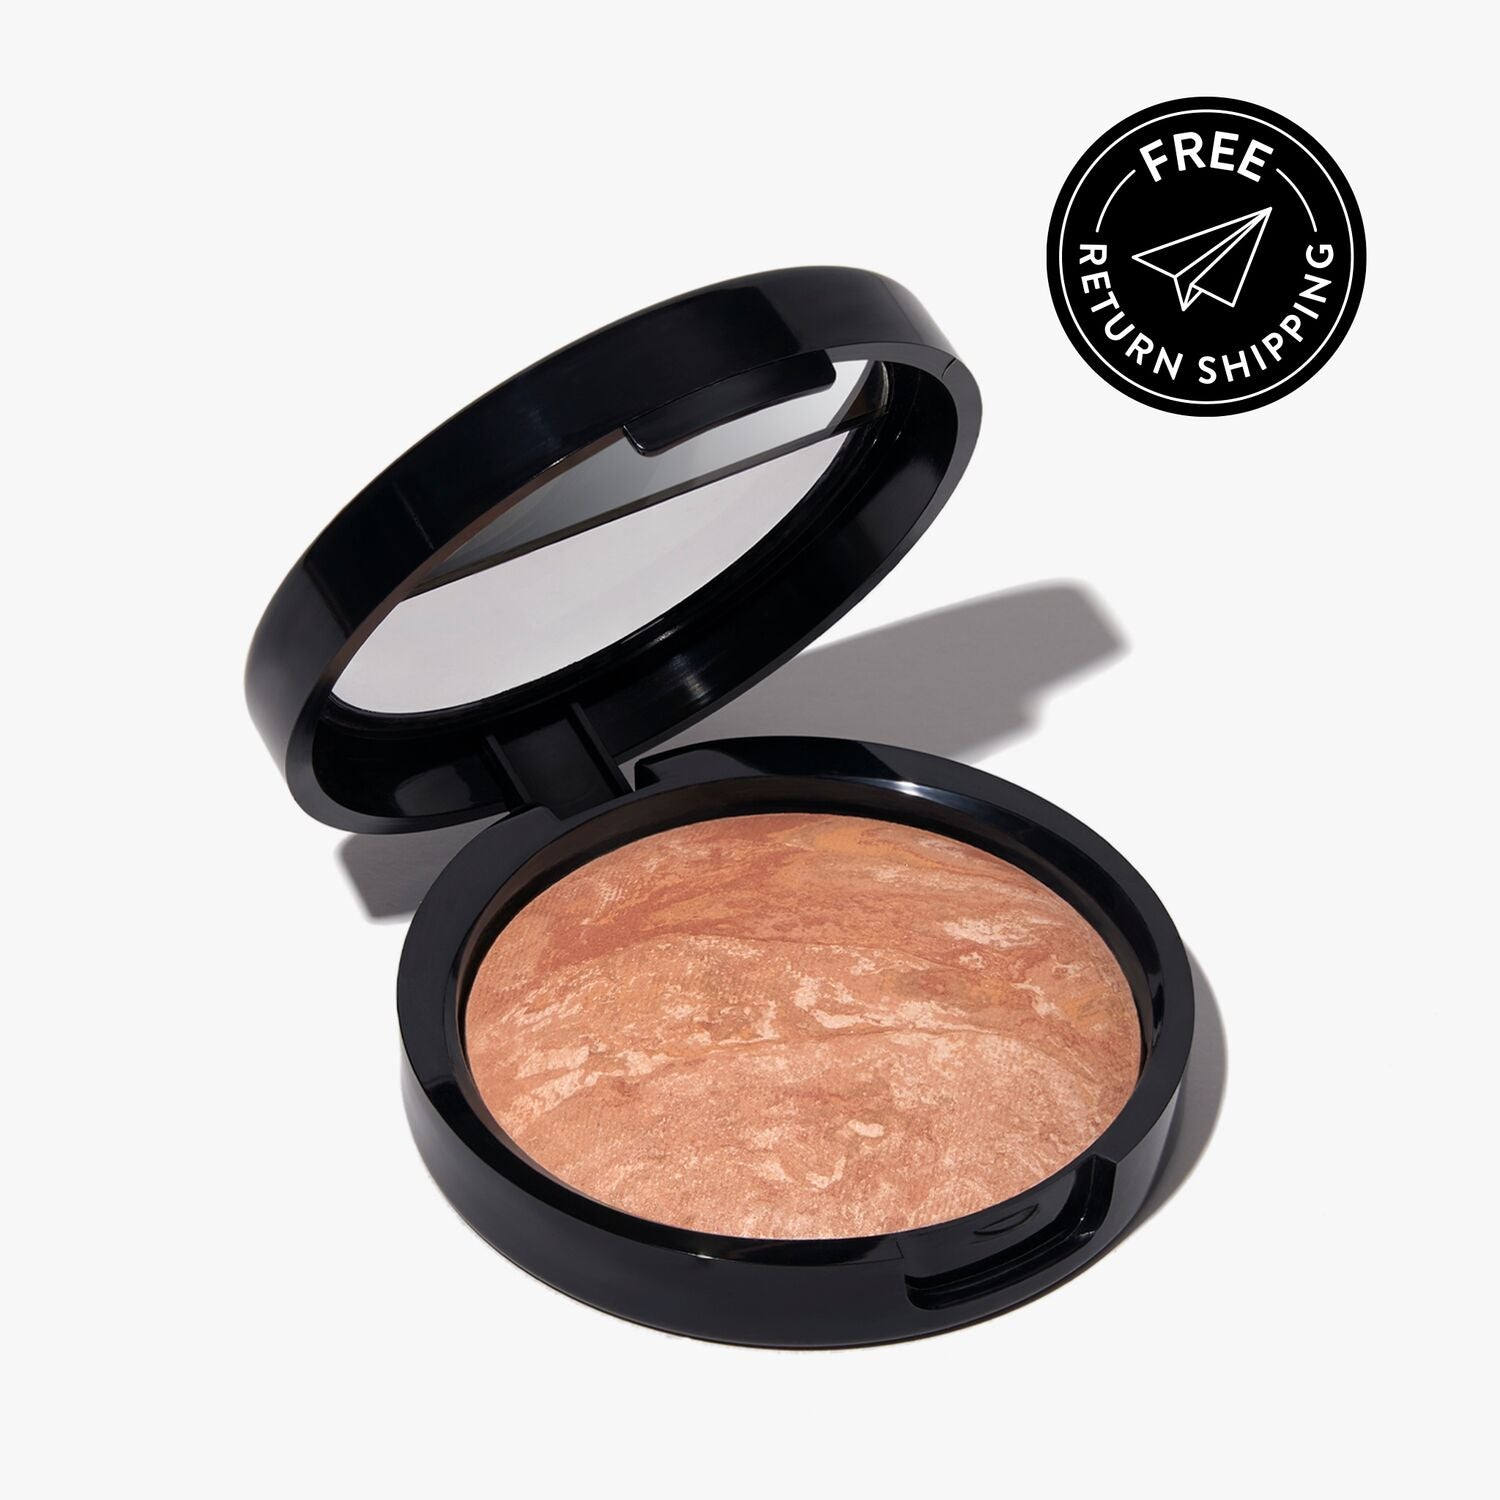 Baked Balance-n-Brighten Color Correcting Foundation Light